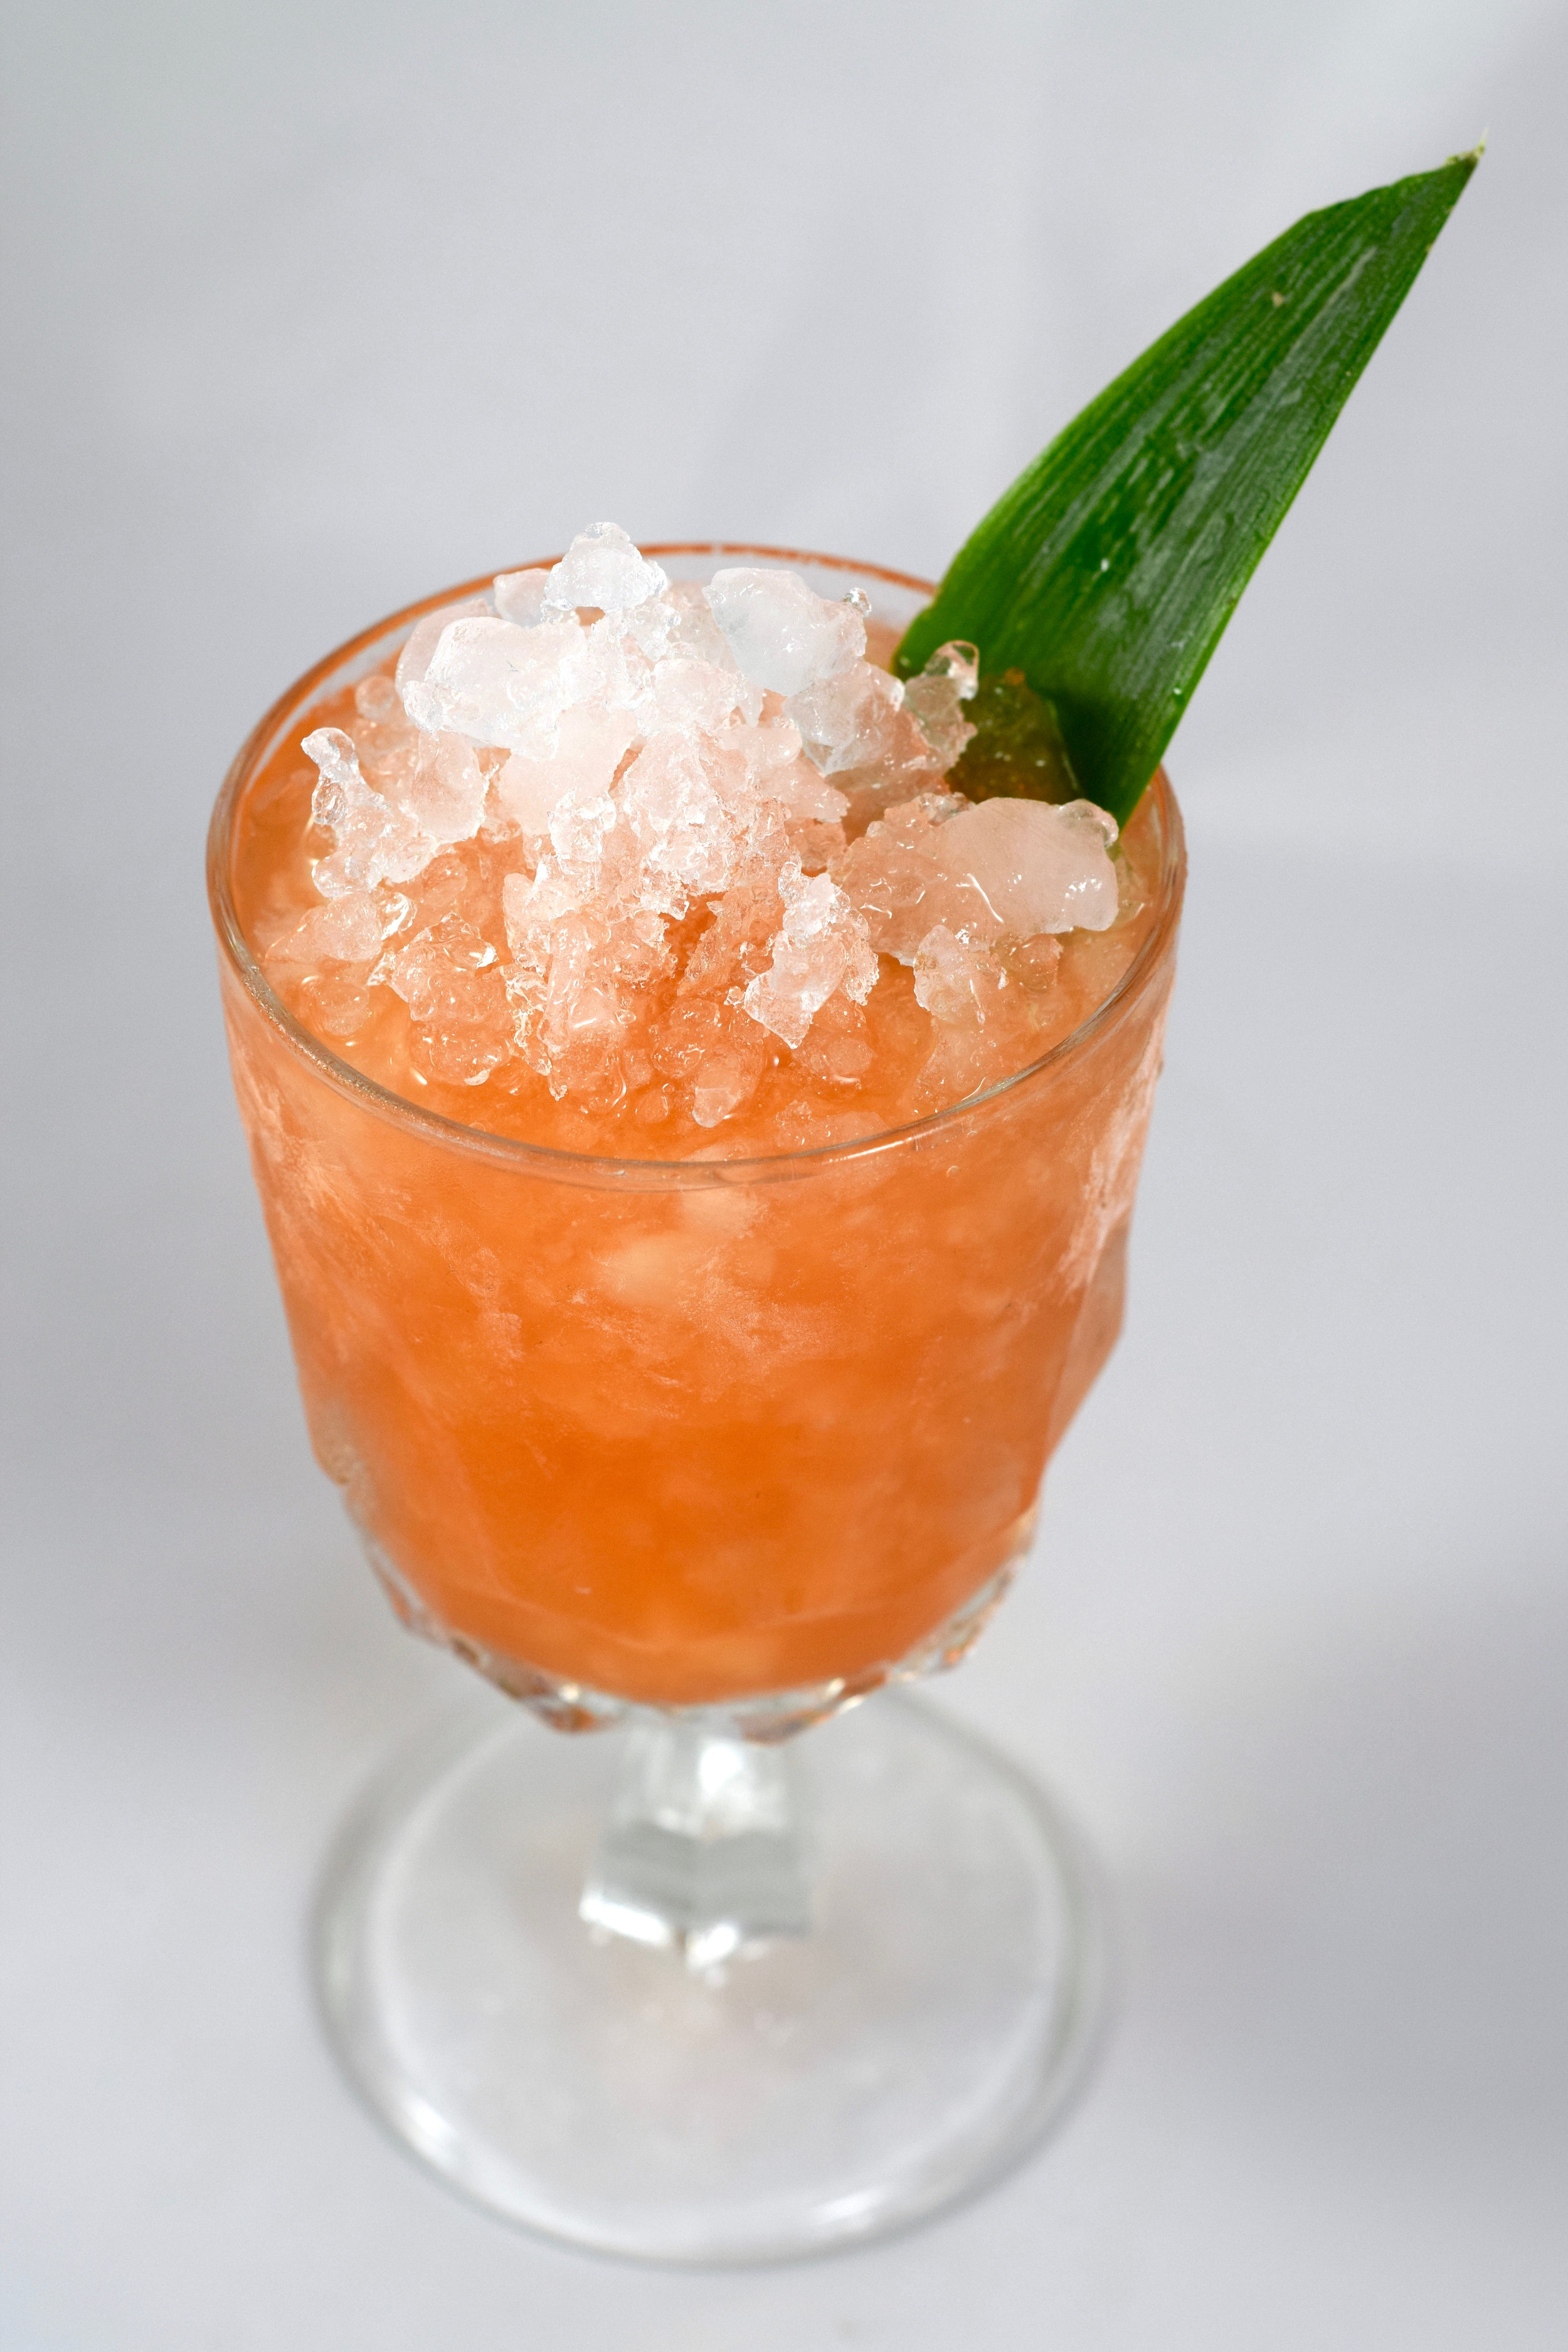 FLY SOUTH - 1 oz jamaican rum1 oz blackstrap rum1/2 oz campari1/2 oz nostrum pineapple turmeric ginger shrub3/4 oz lime juice1/4 oz cinnamon syrupShake with ice and strain.